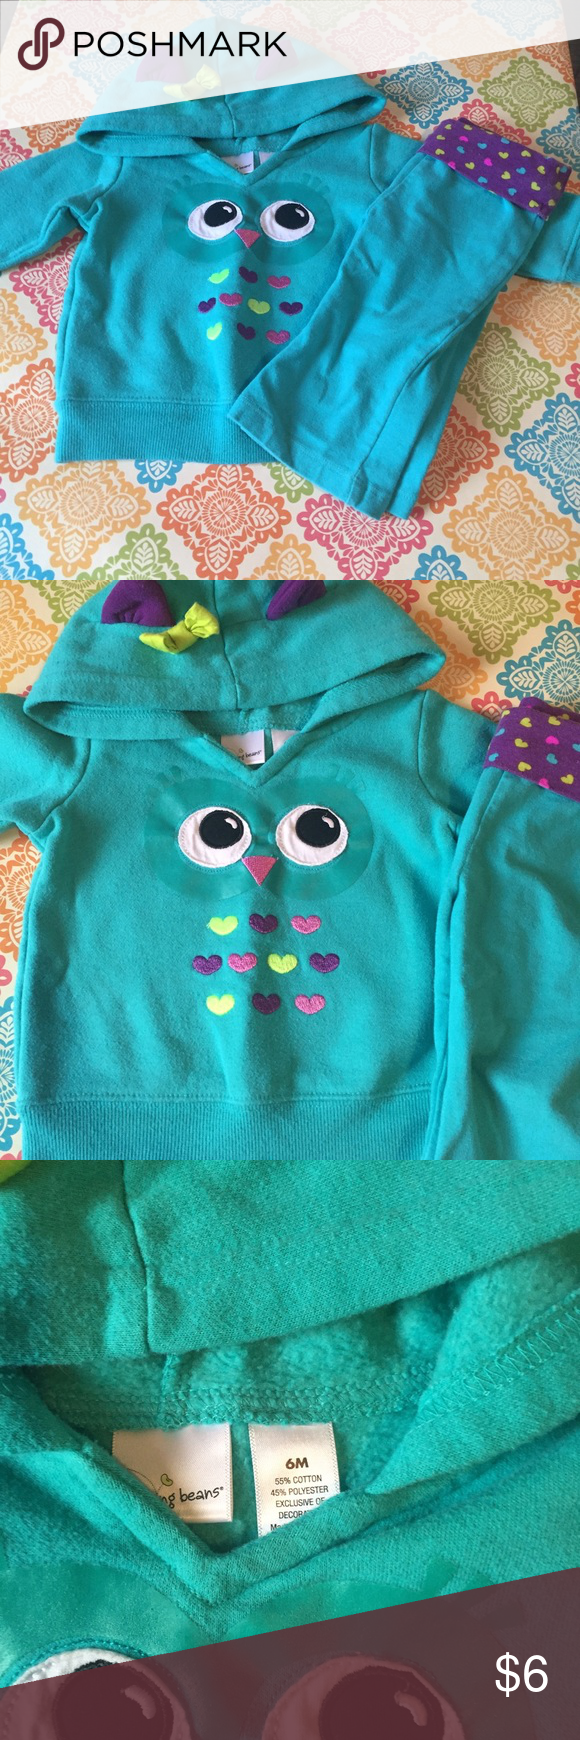 Jumping Beans sweatshirt and pants set Teal owl sweatshirt with purple ears and green bow on hood with matching bottoms Matching Sets